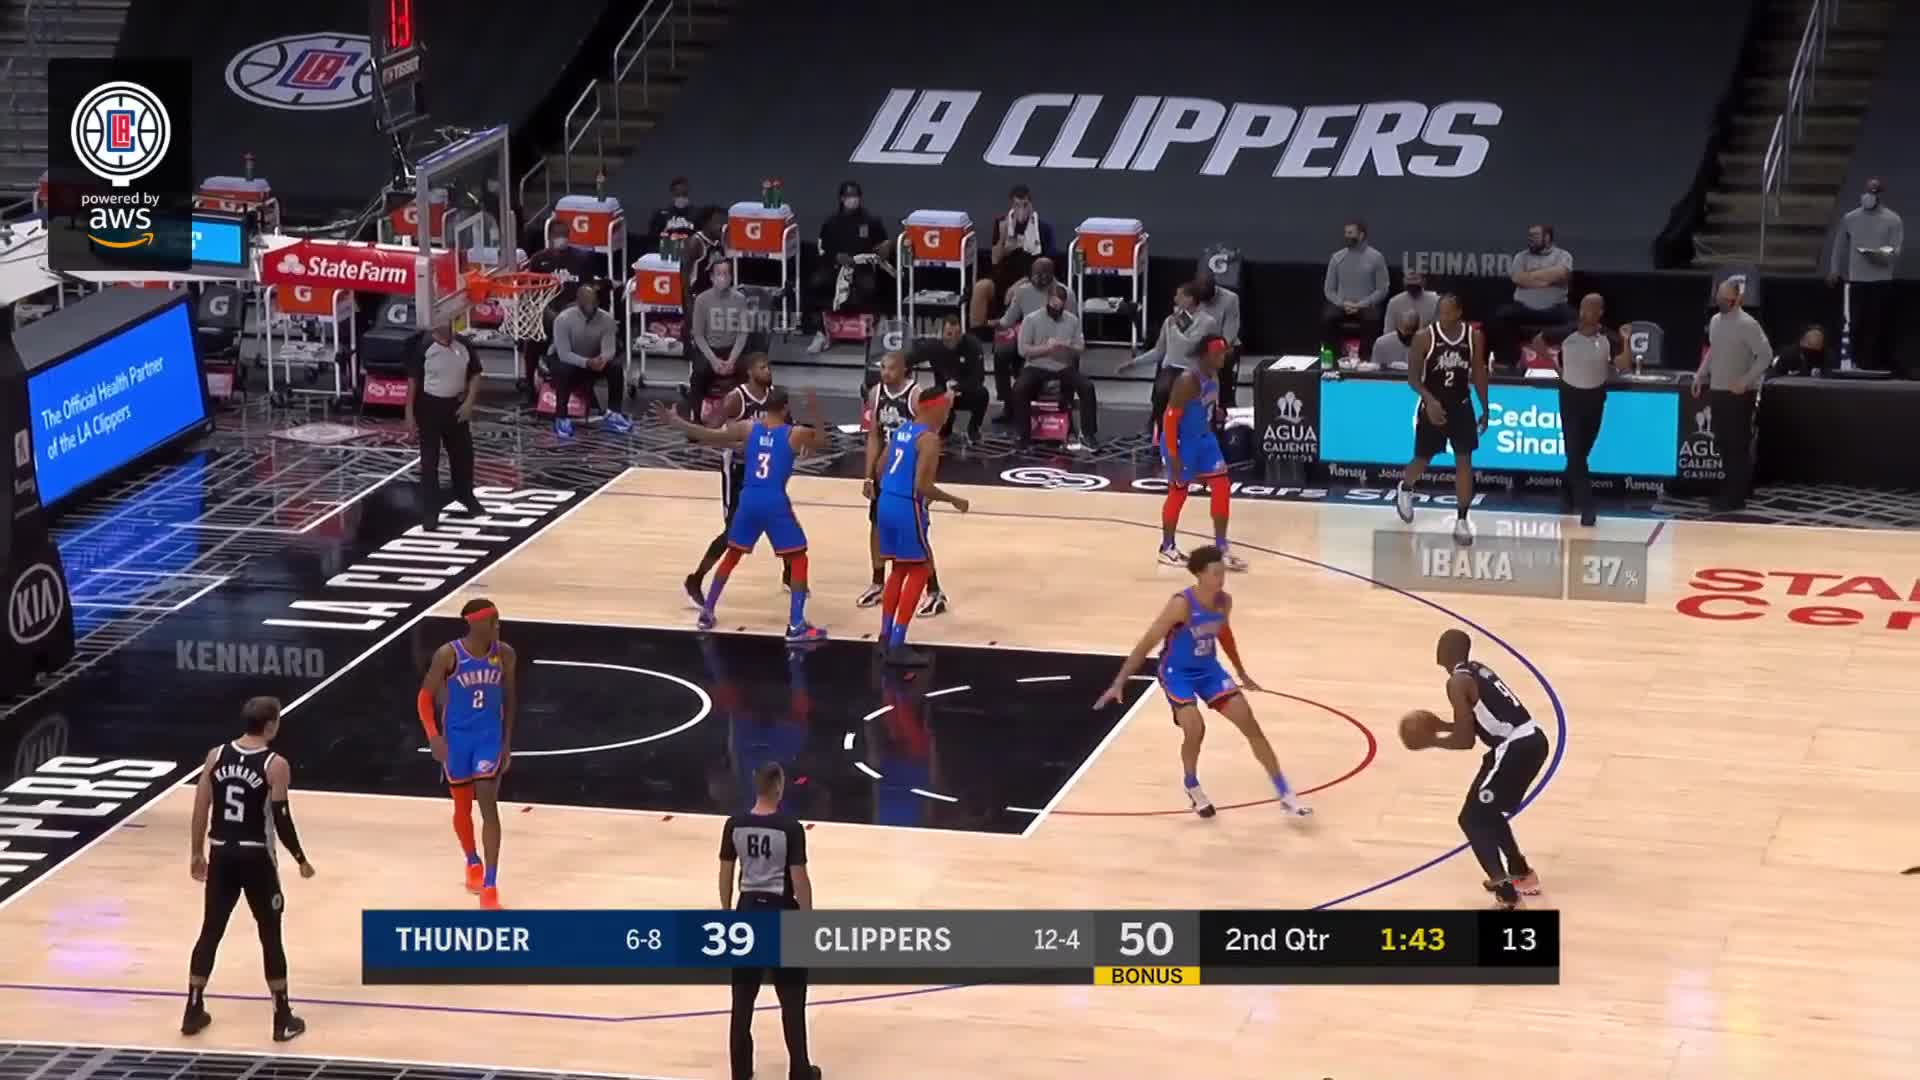 Clippers CourtVision Powered by AWS | Clippers vs Thunder | (1.24.21)